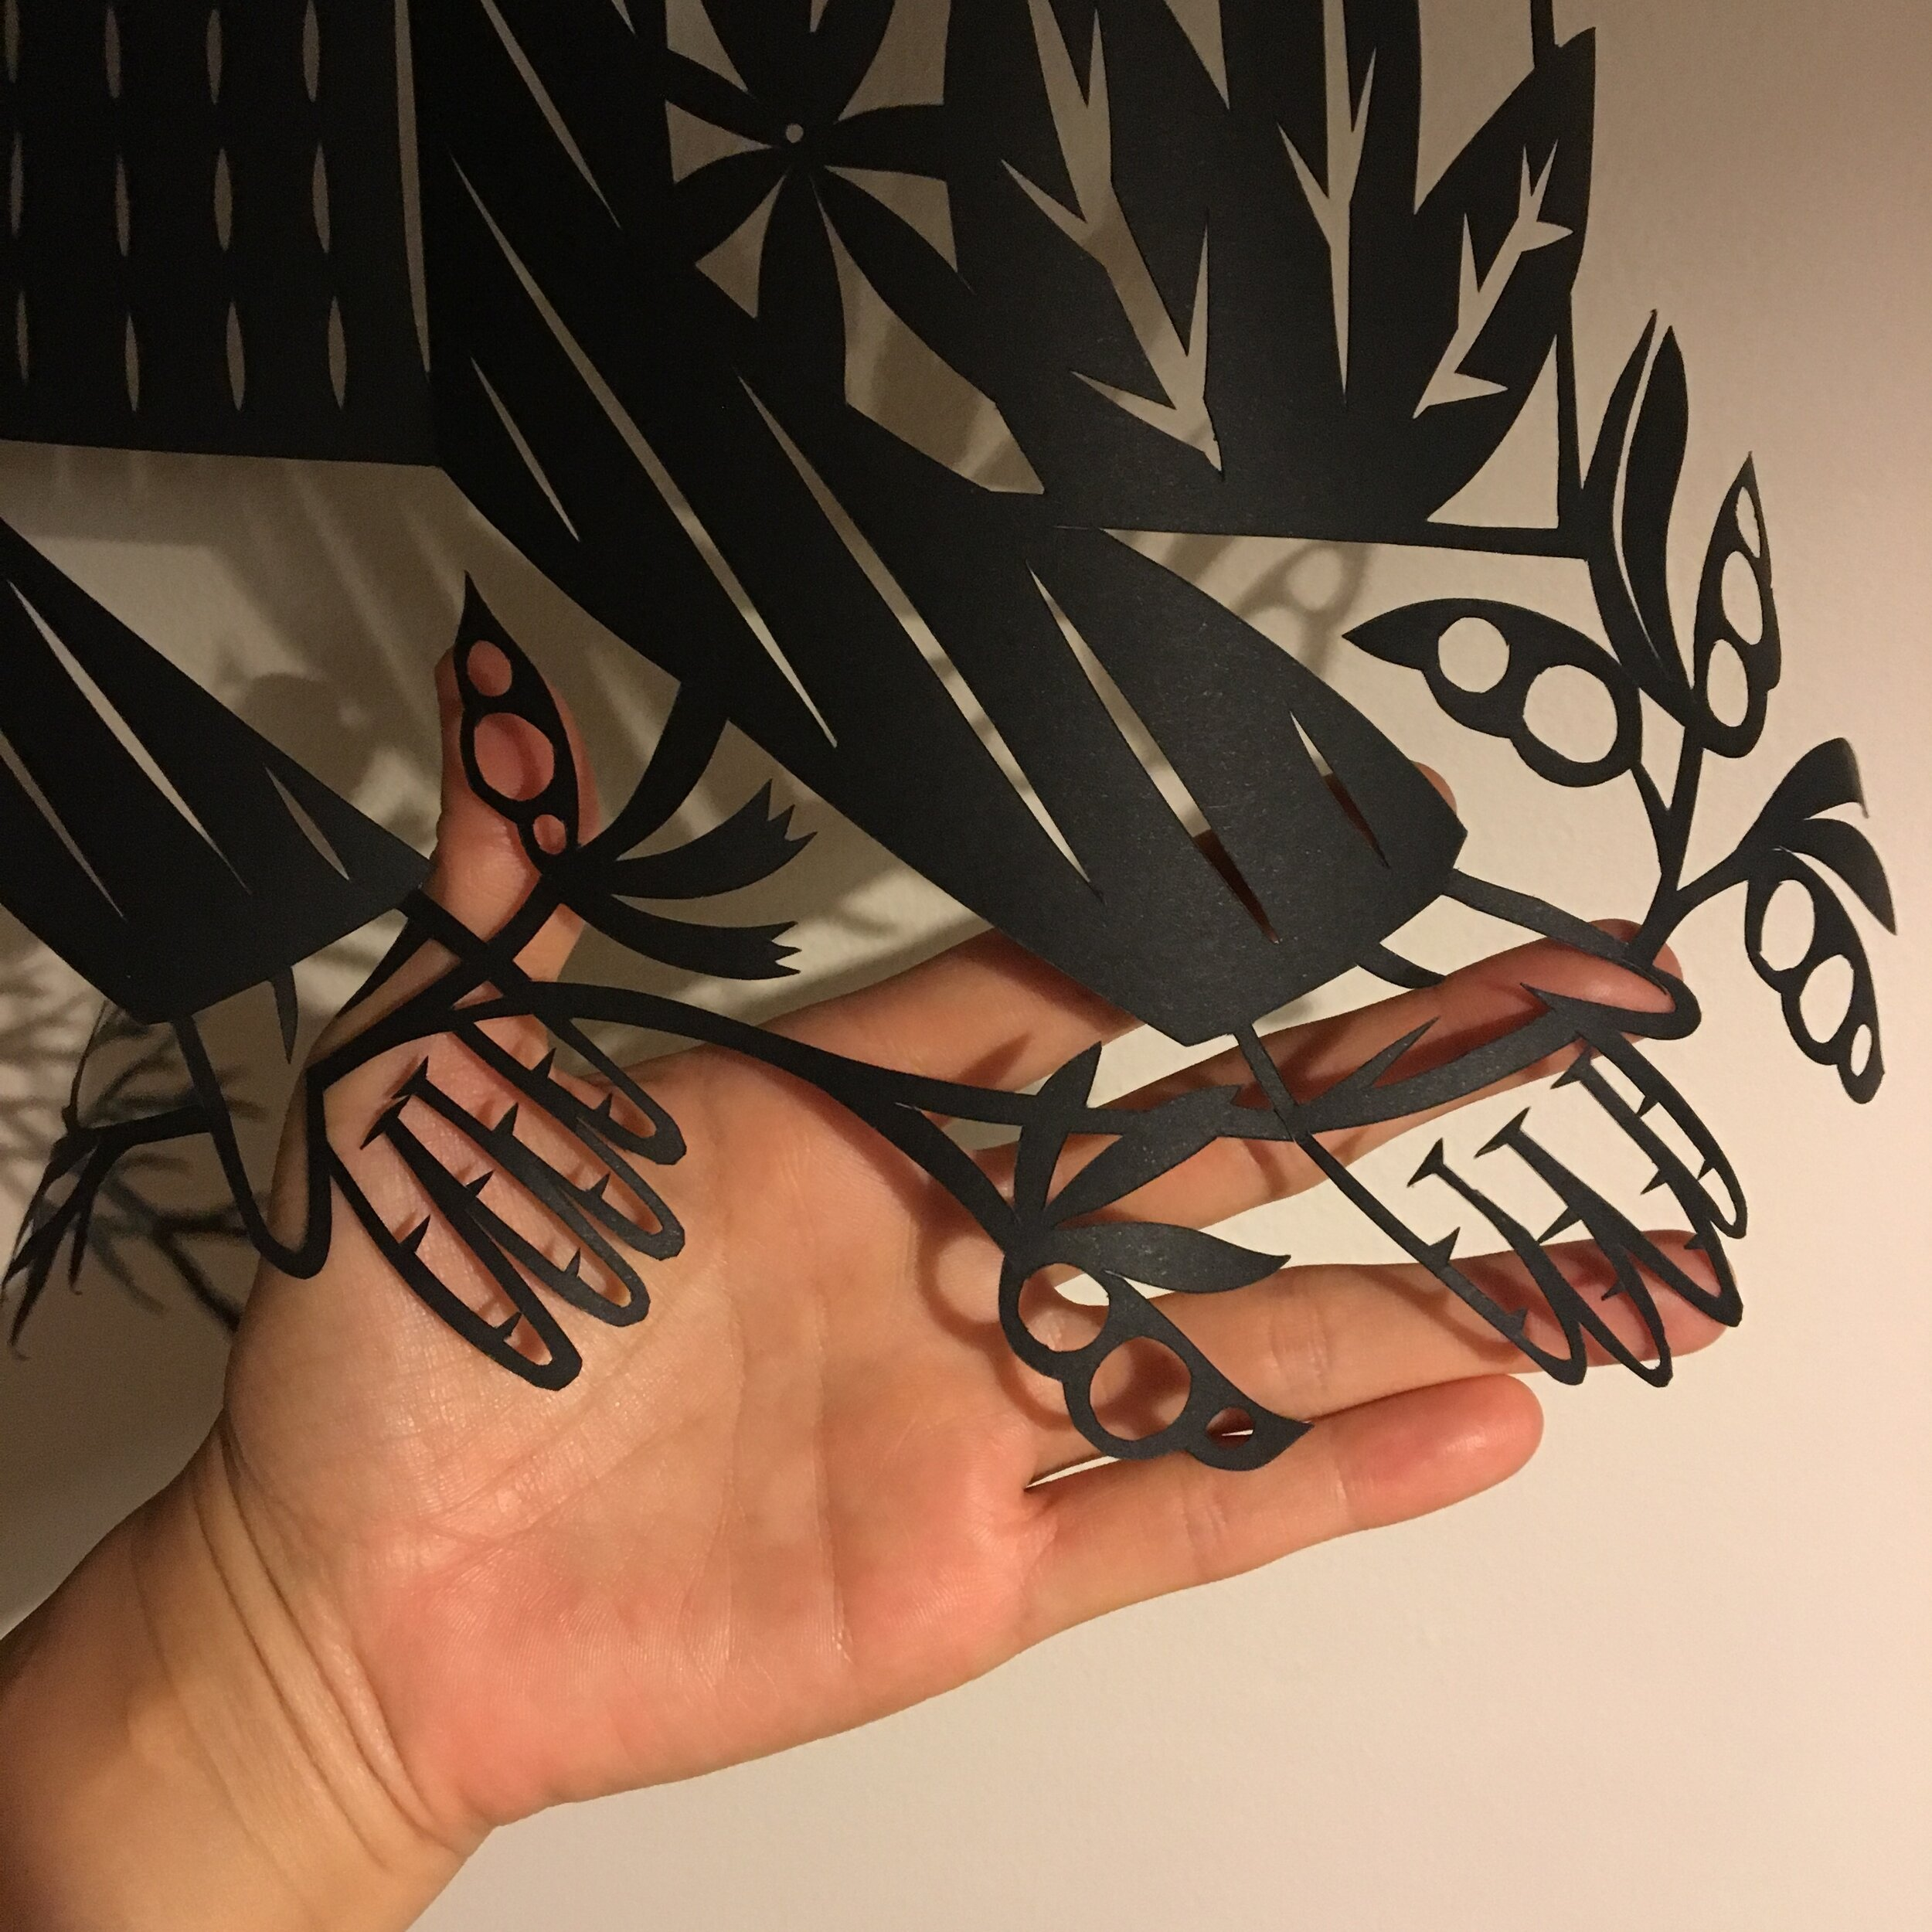 Shadows  - in progress to show scale, hand cut paper